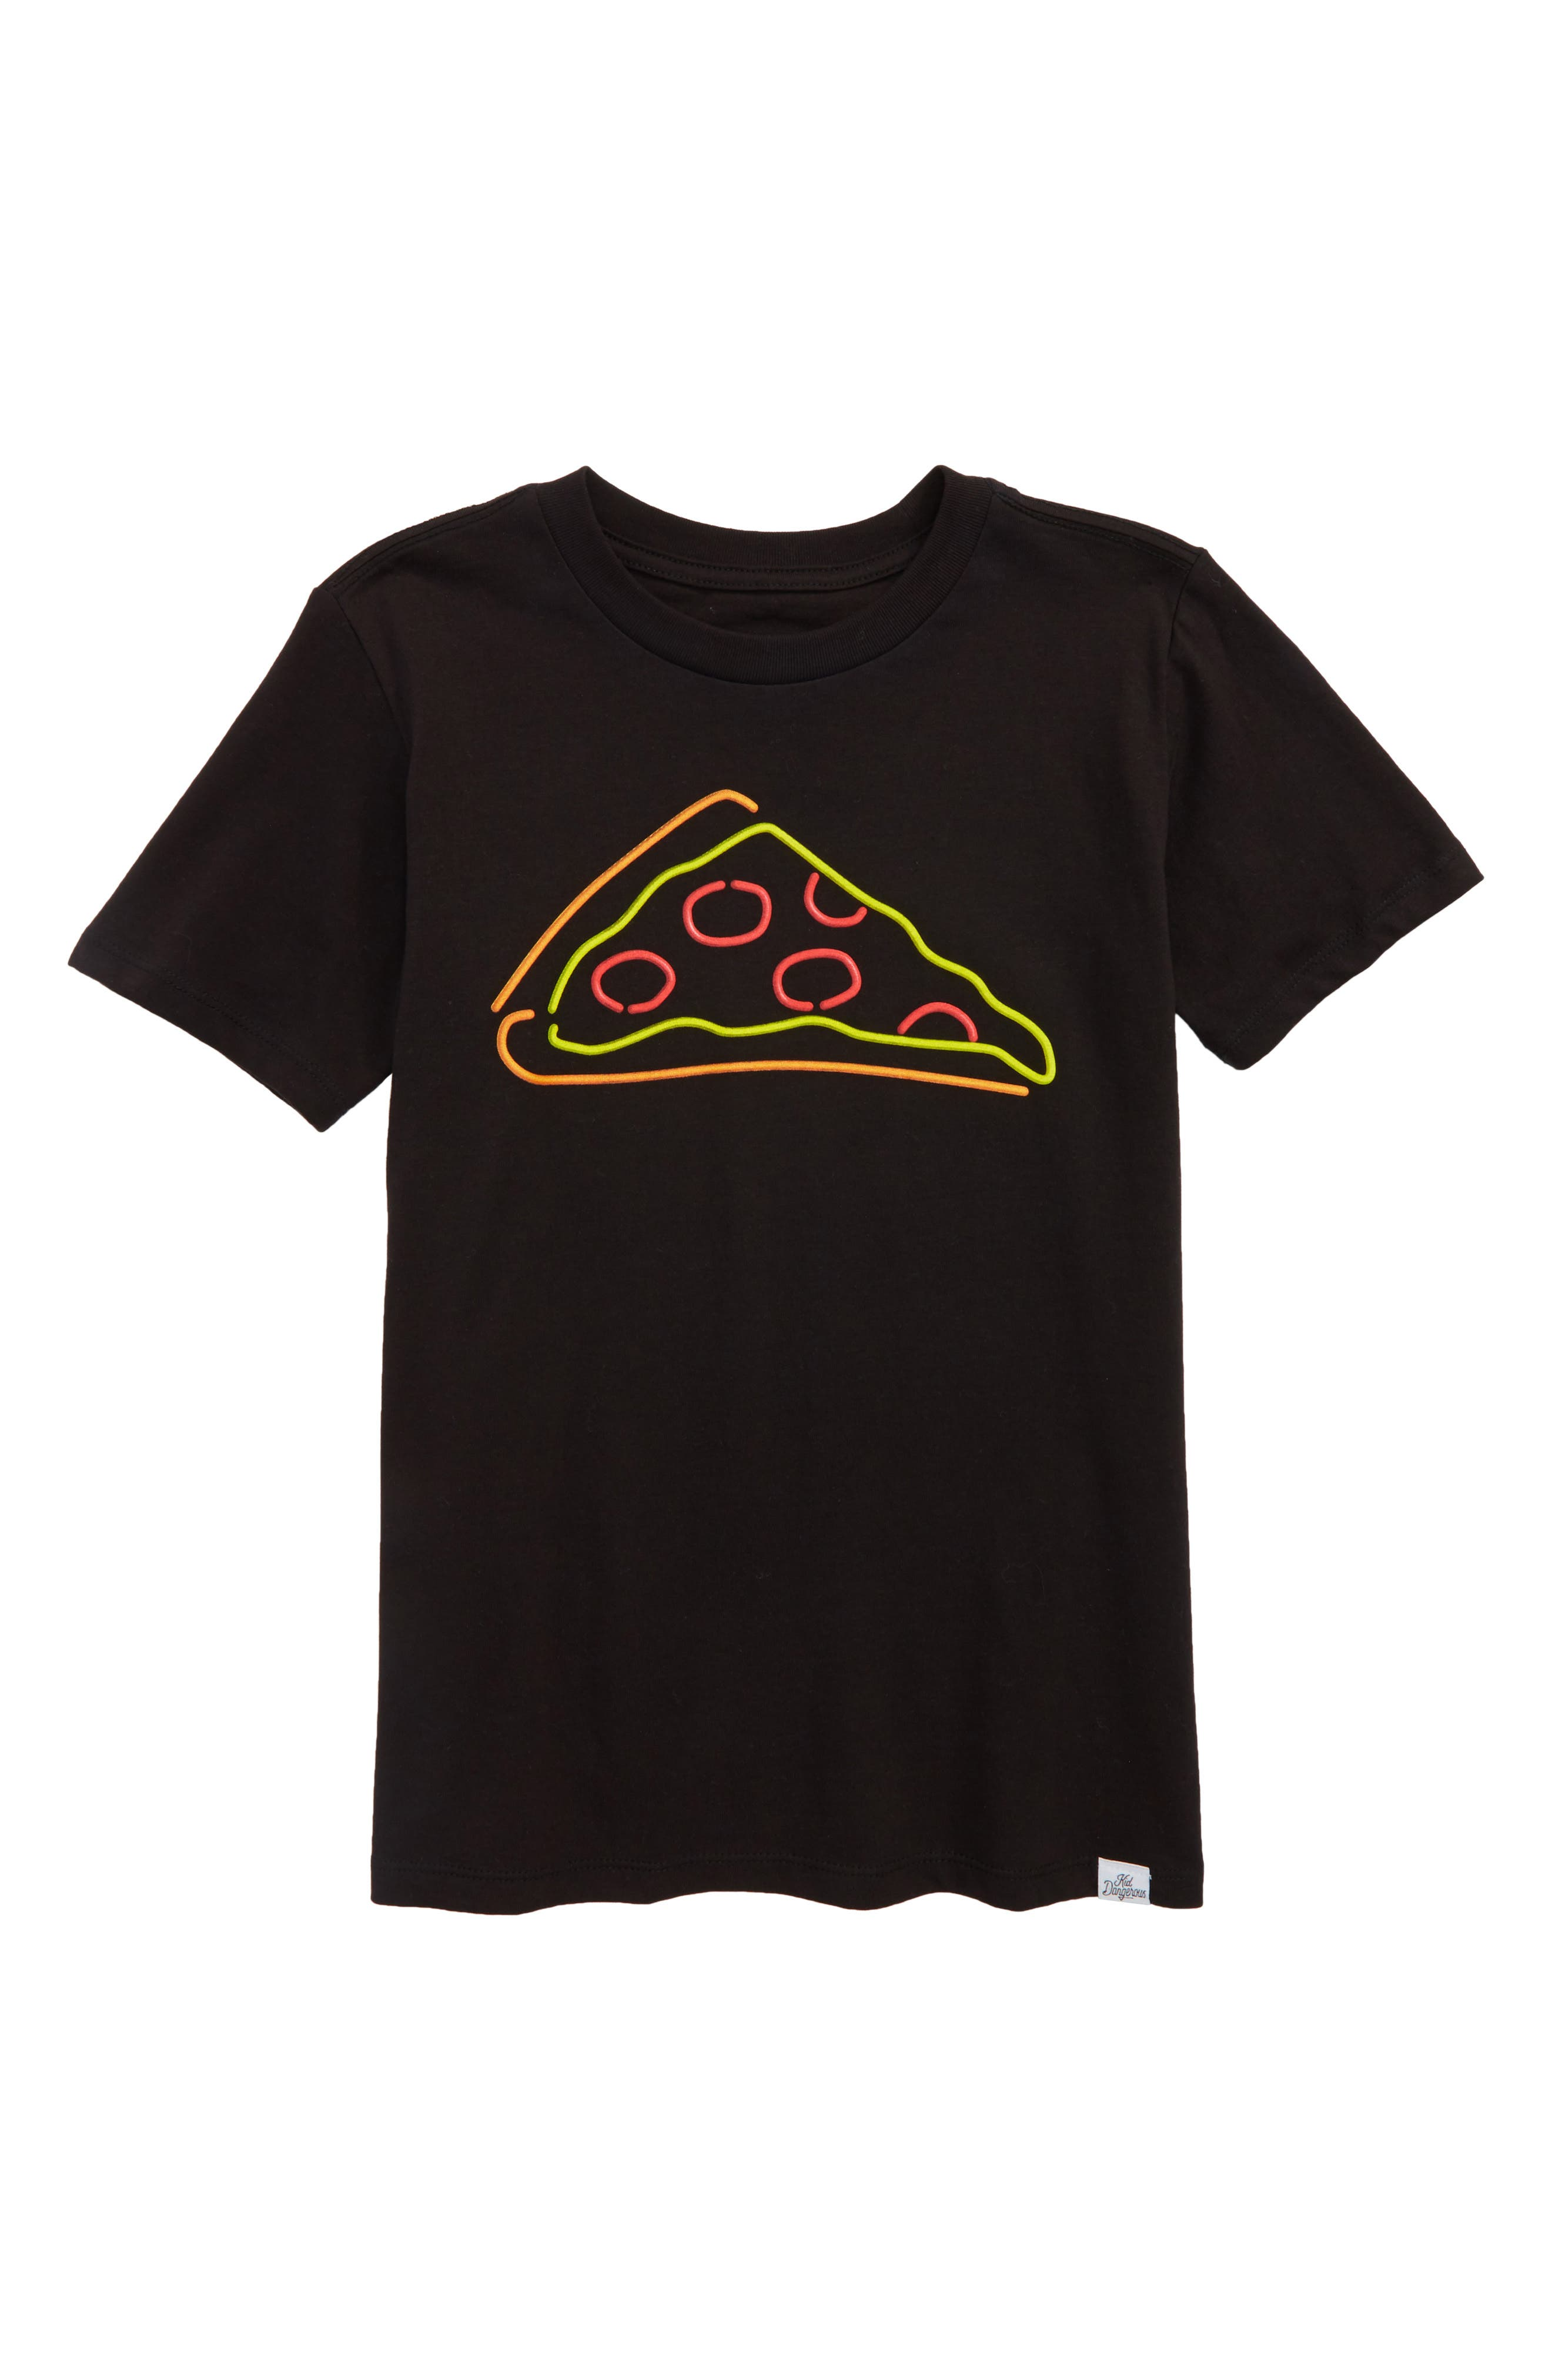 Neon Pizza T-Shirt,                             Main thumbnail 1, color,                             Black